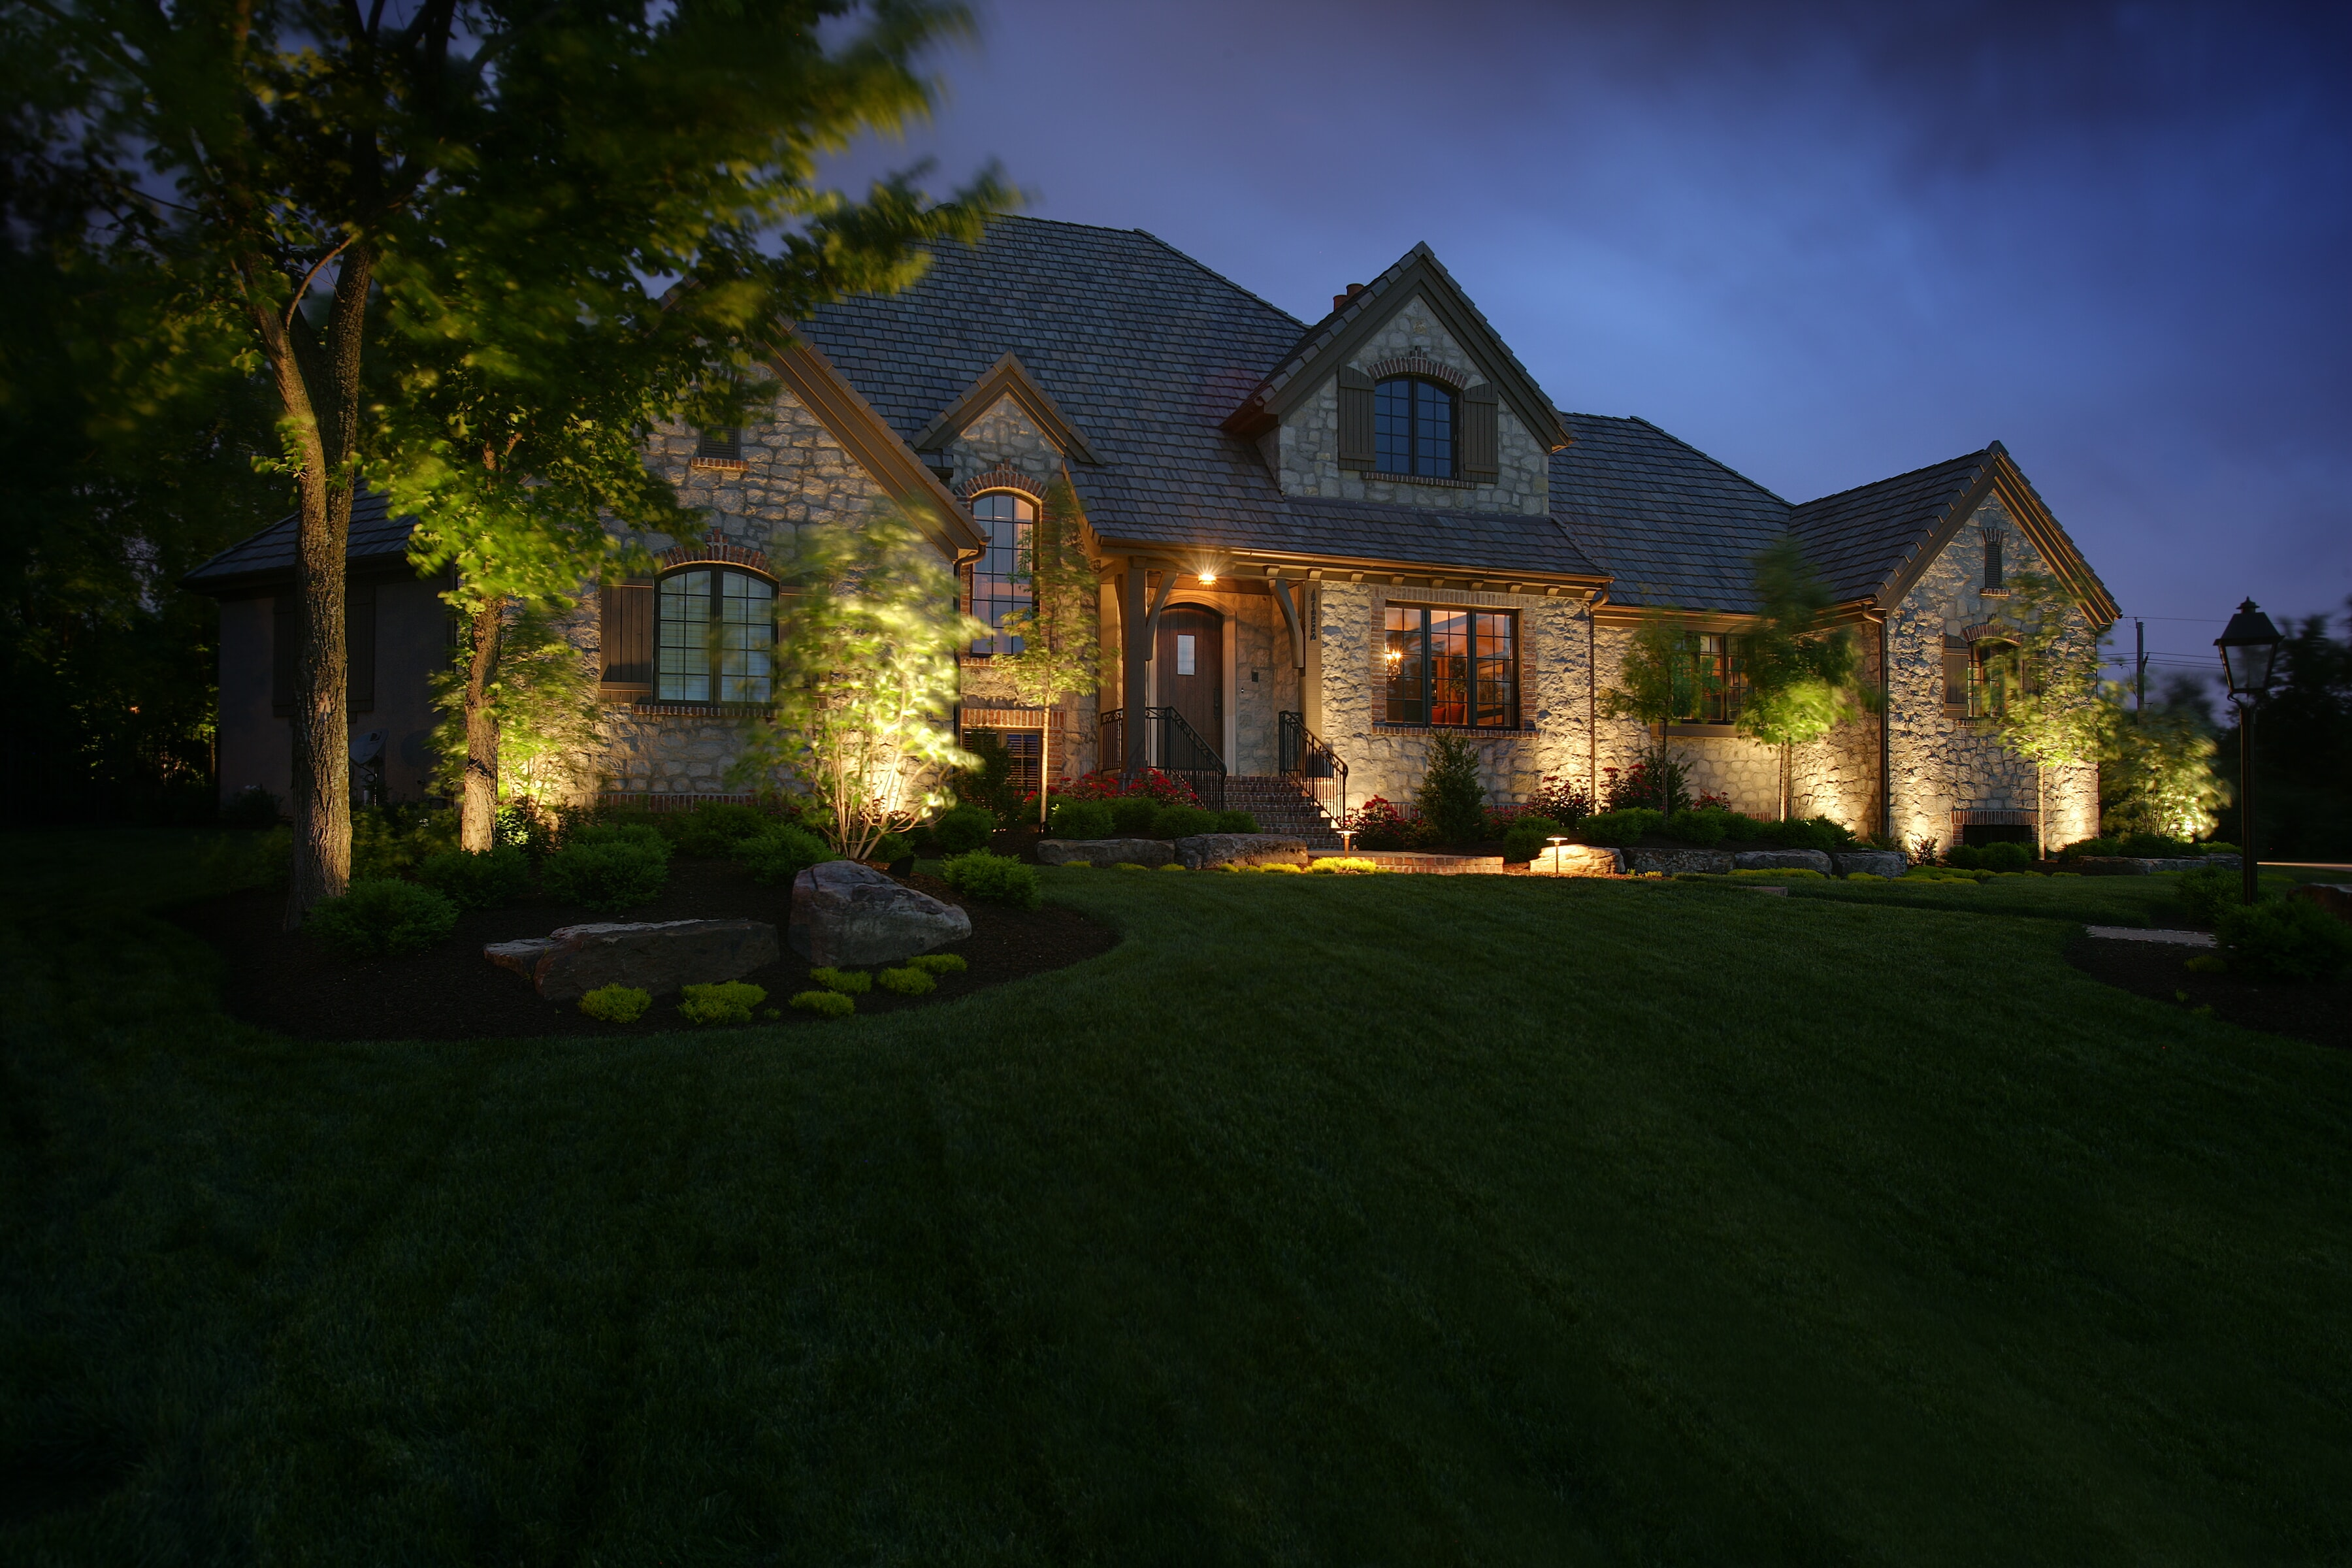 Home with Architectural Lighting